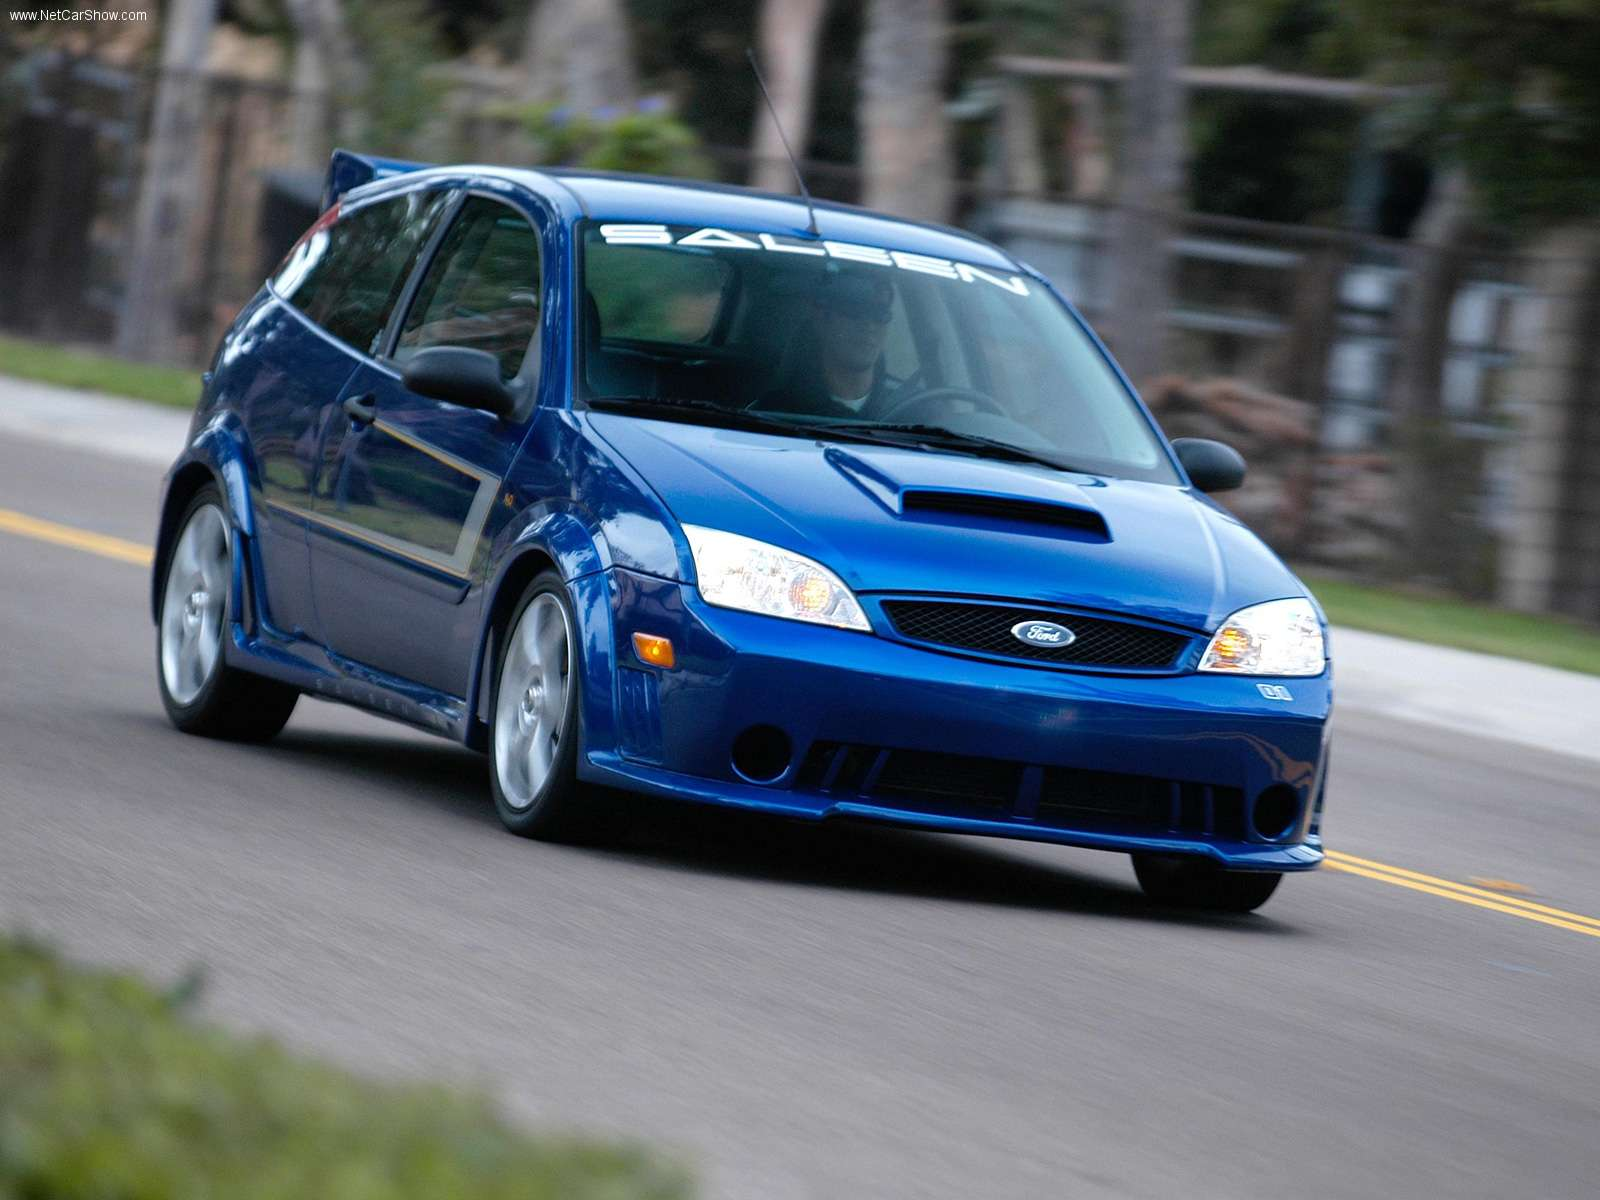 ford focus saleen s121 specs. Black Bedroom Furniture Sets. Home Design Ideas